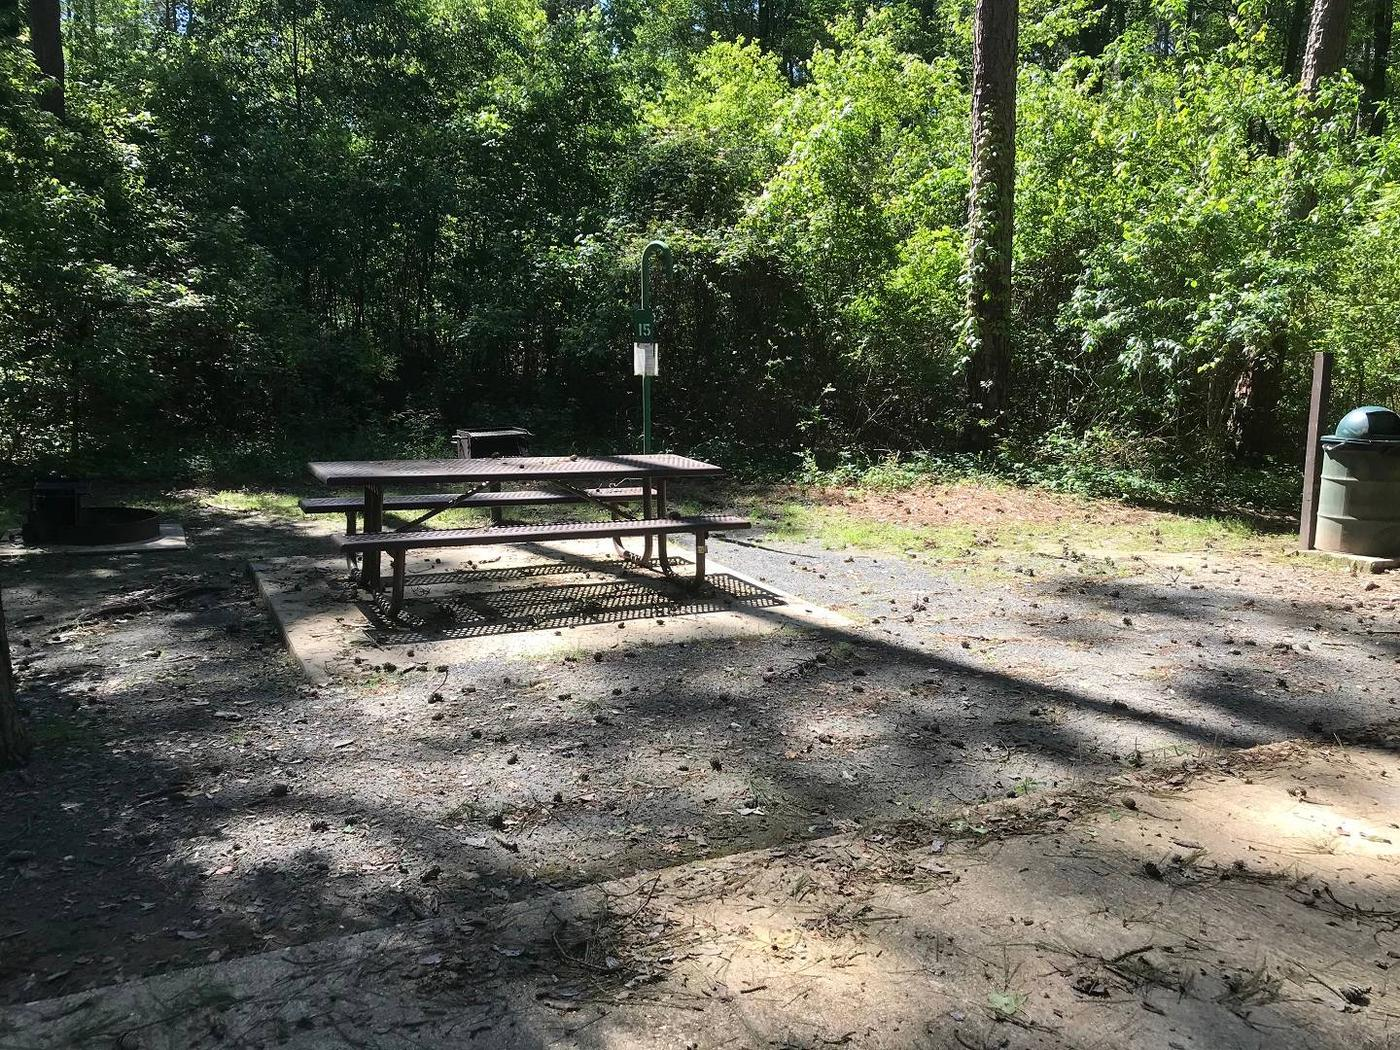 Shaded Class A Campsite #15.Shaded Class A Campsite #15. RV pad, water, and 20/30/50 AMP electric hook-ups as well as basic campsite amenities including a picnic table, lantern post, fire ring, trash can and grill.